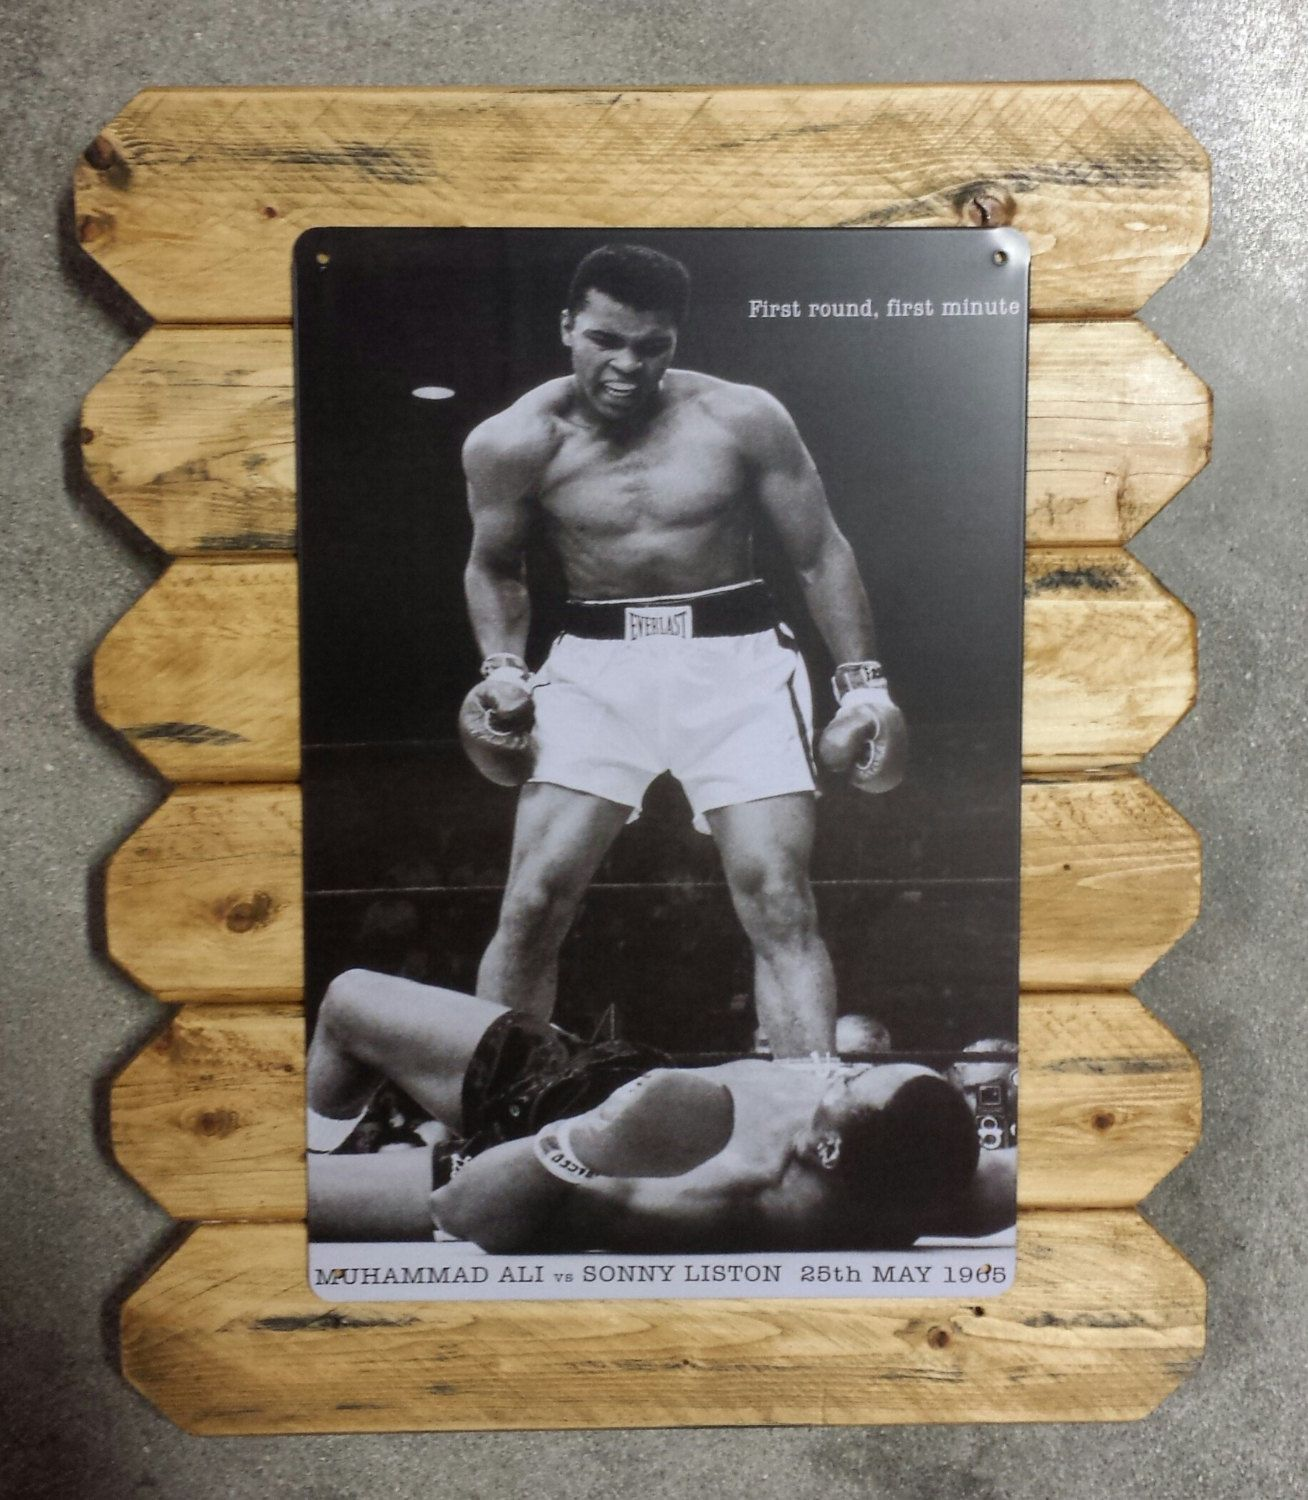 Mohamed Ali vs Sonny Liston Retro Metal Poster Framed in Distressed Pinewood by ArtMaxAntiques on Etsy